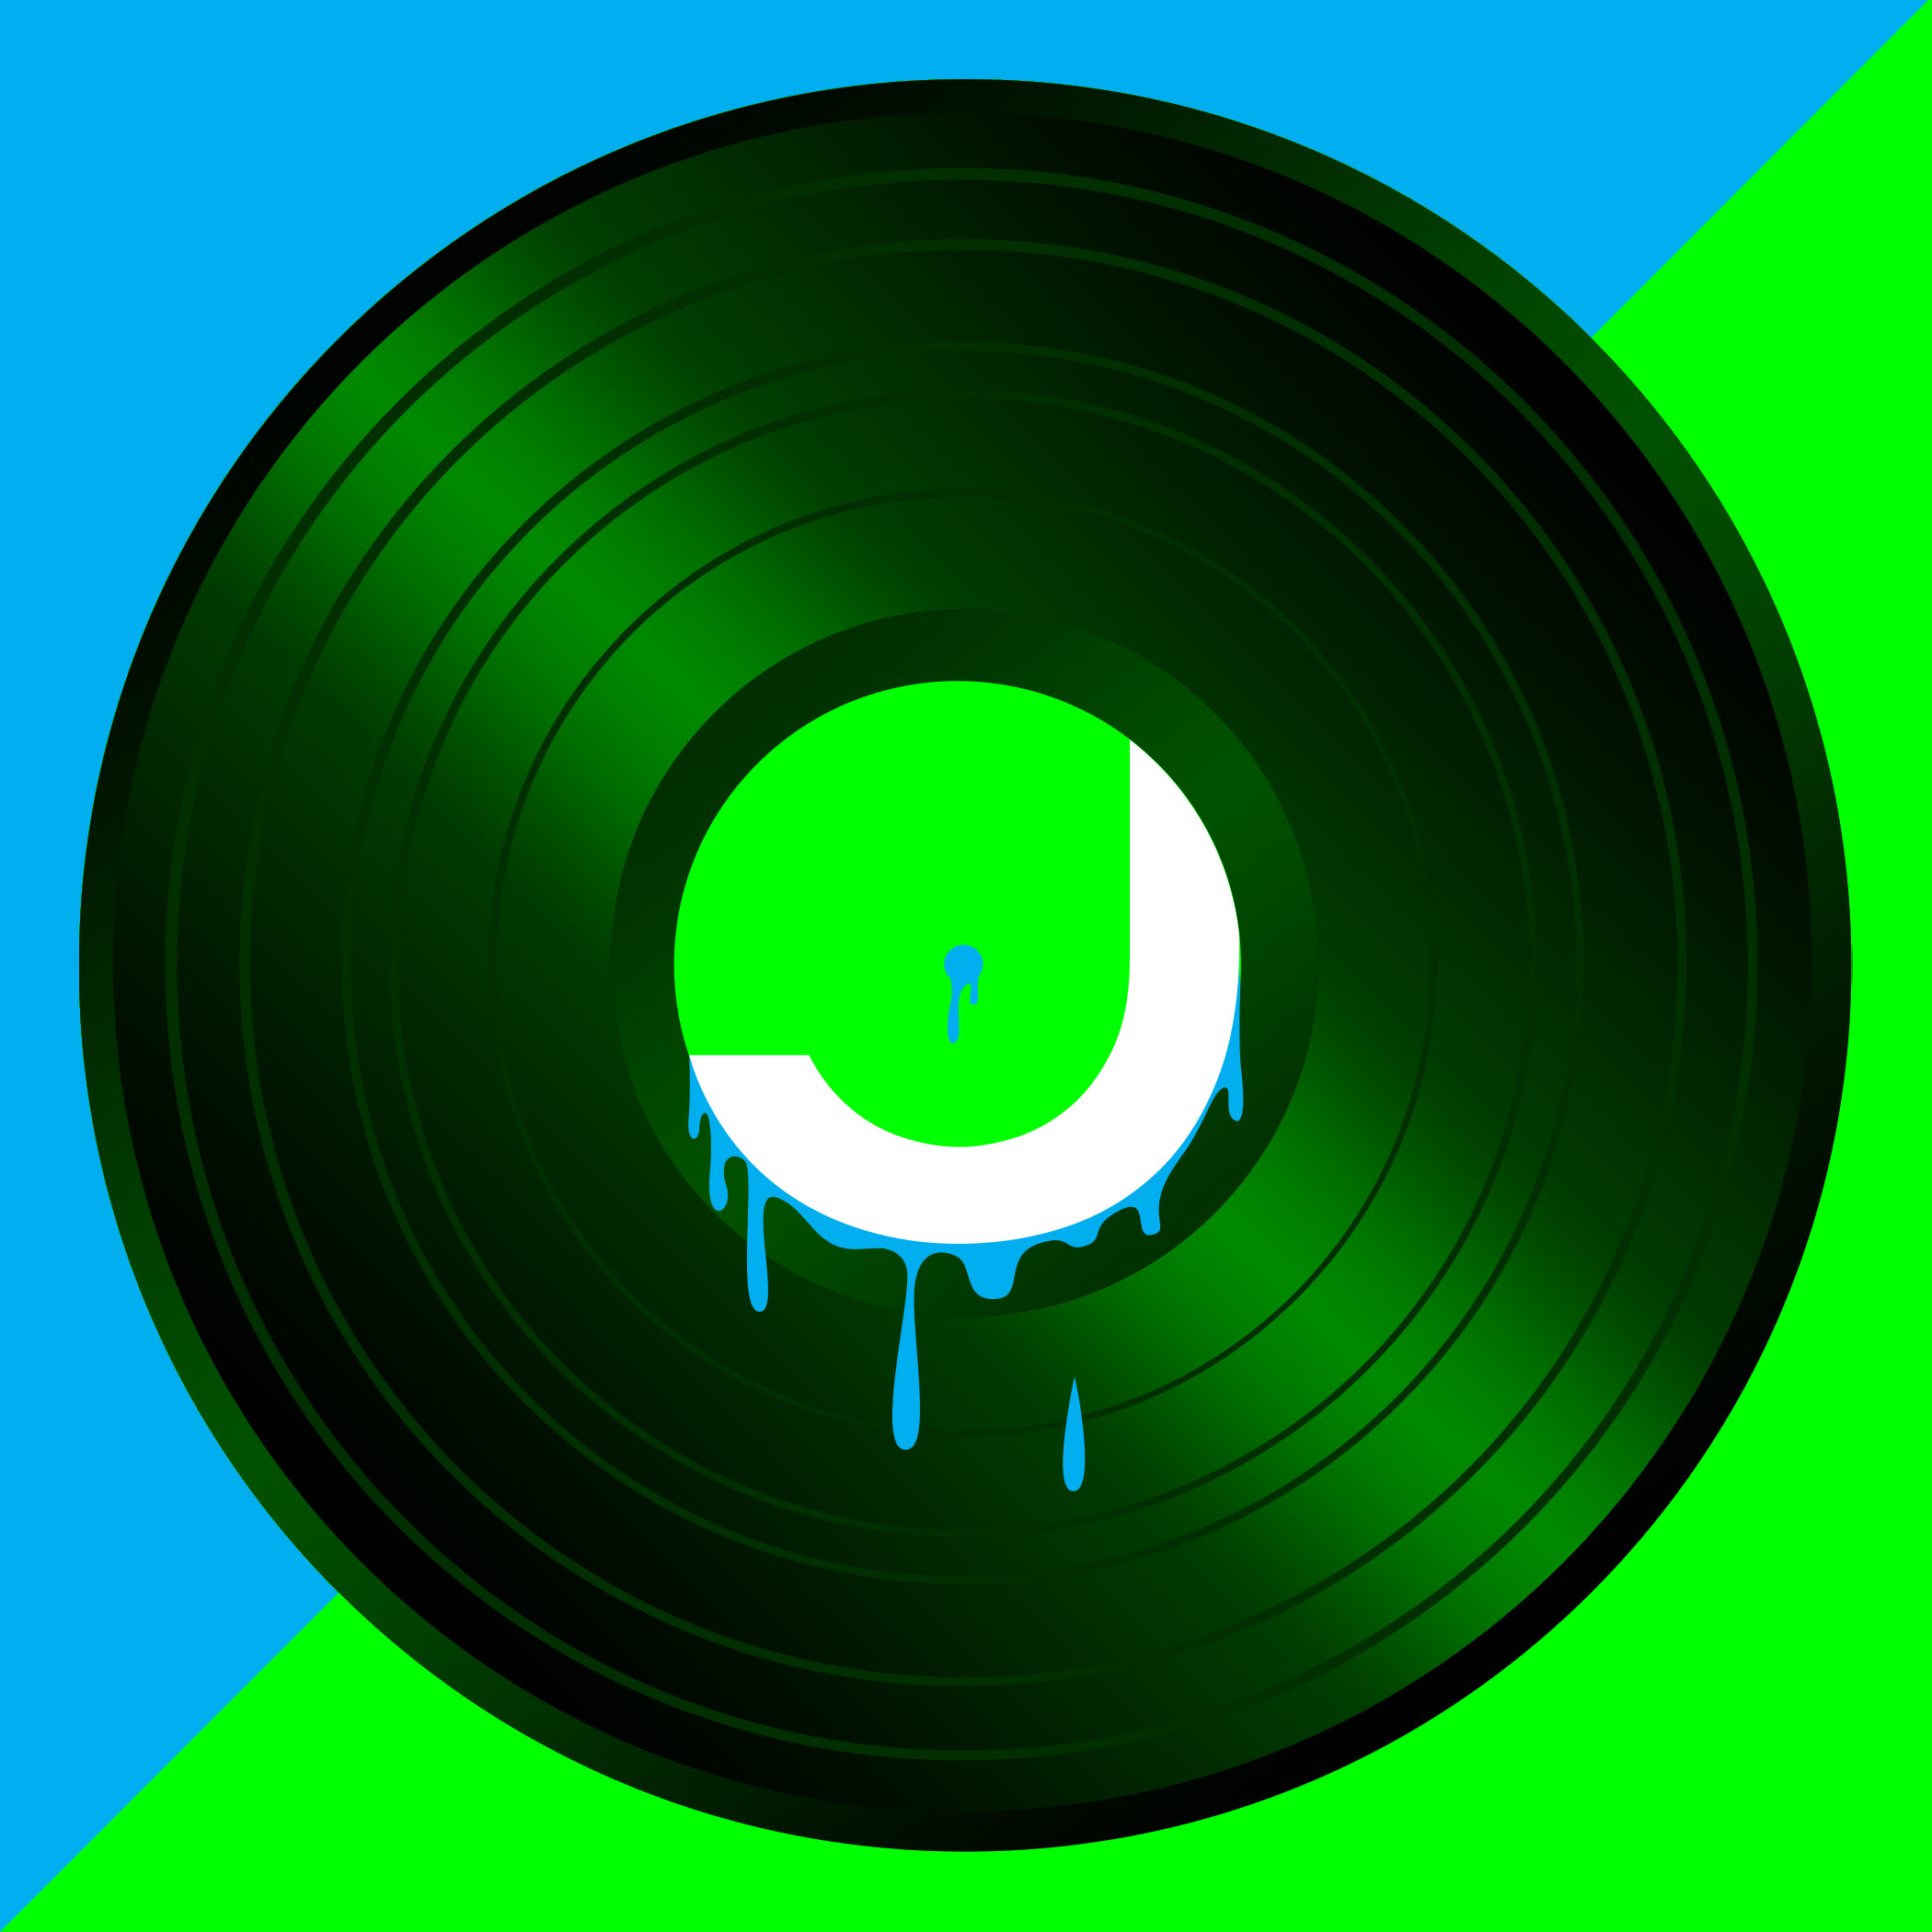 ...july jamm playlist icon...